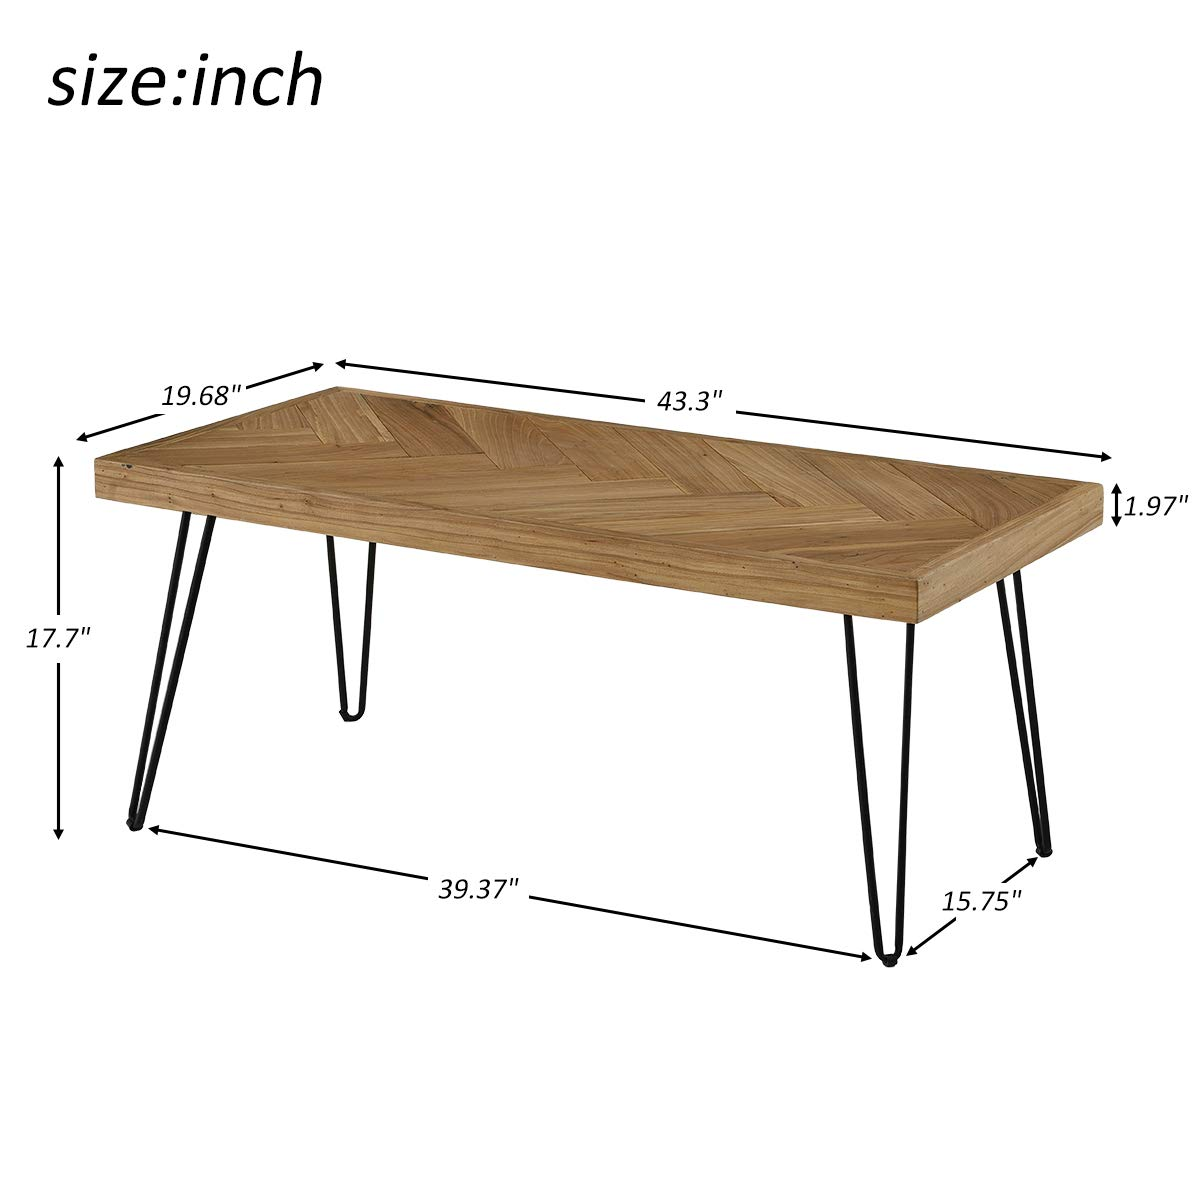 Easy Assembly Center Table Nature Cocktail Table for Living Room w//Chevron Pattern /& Metal Hairpin Legs Nature Rustic Rectangular Table /… P PURLOVE Modern Wood Coffee Table